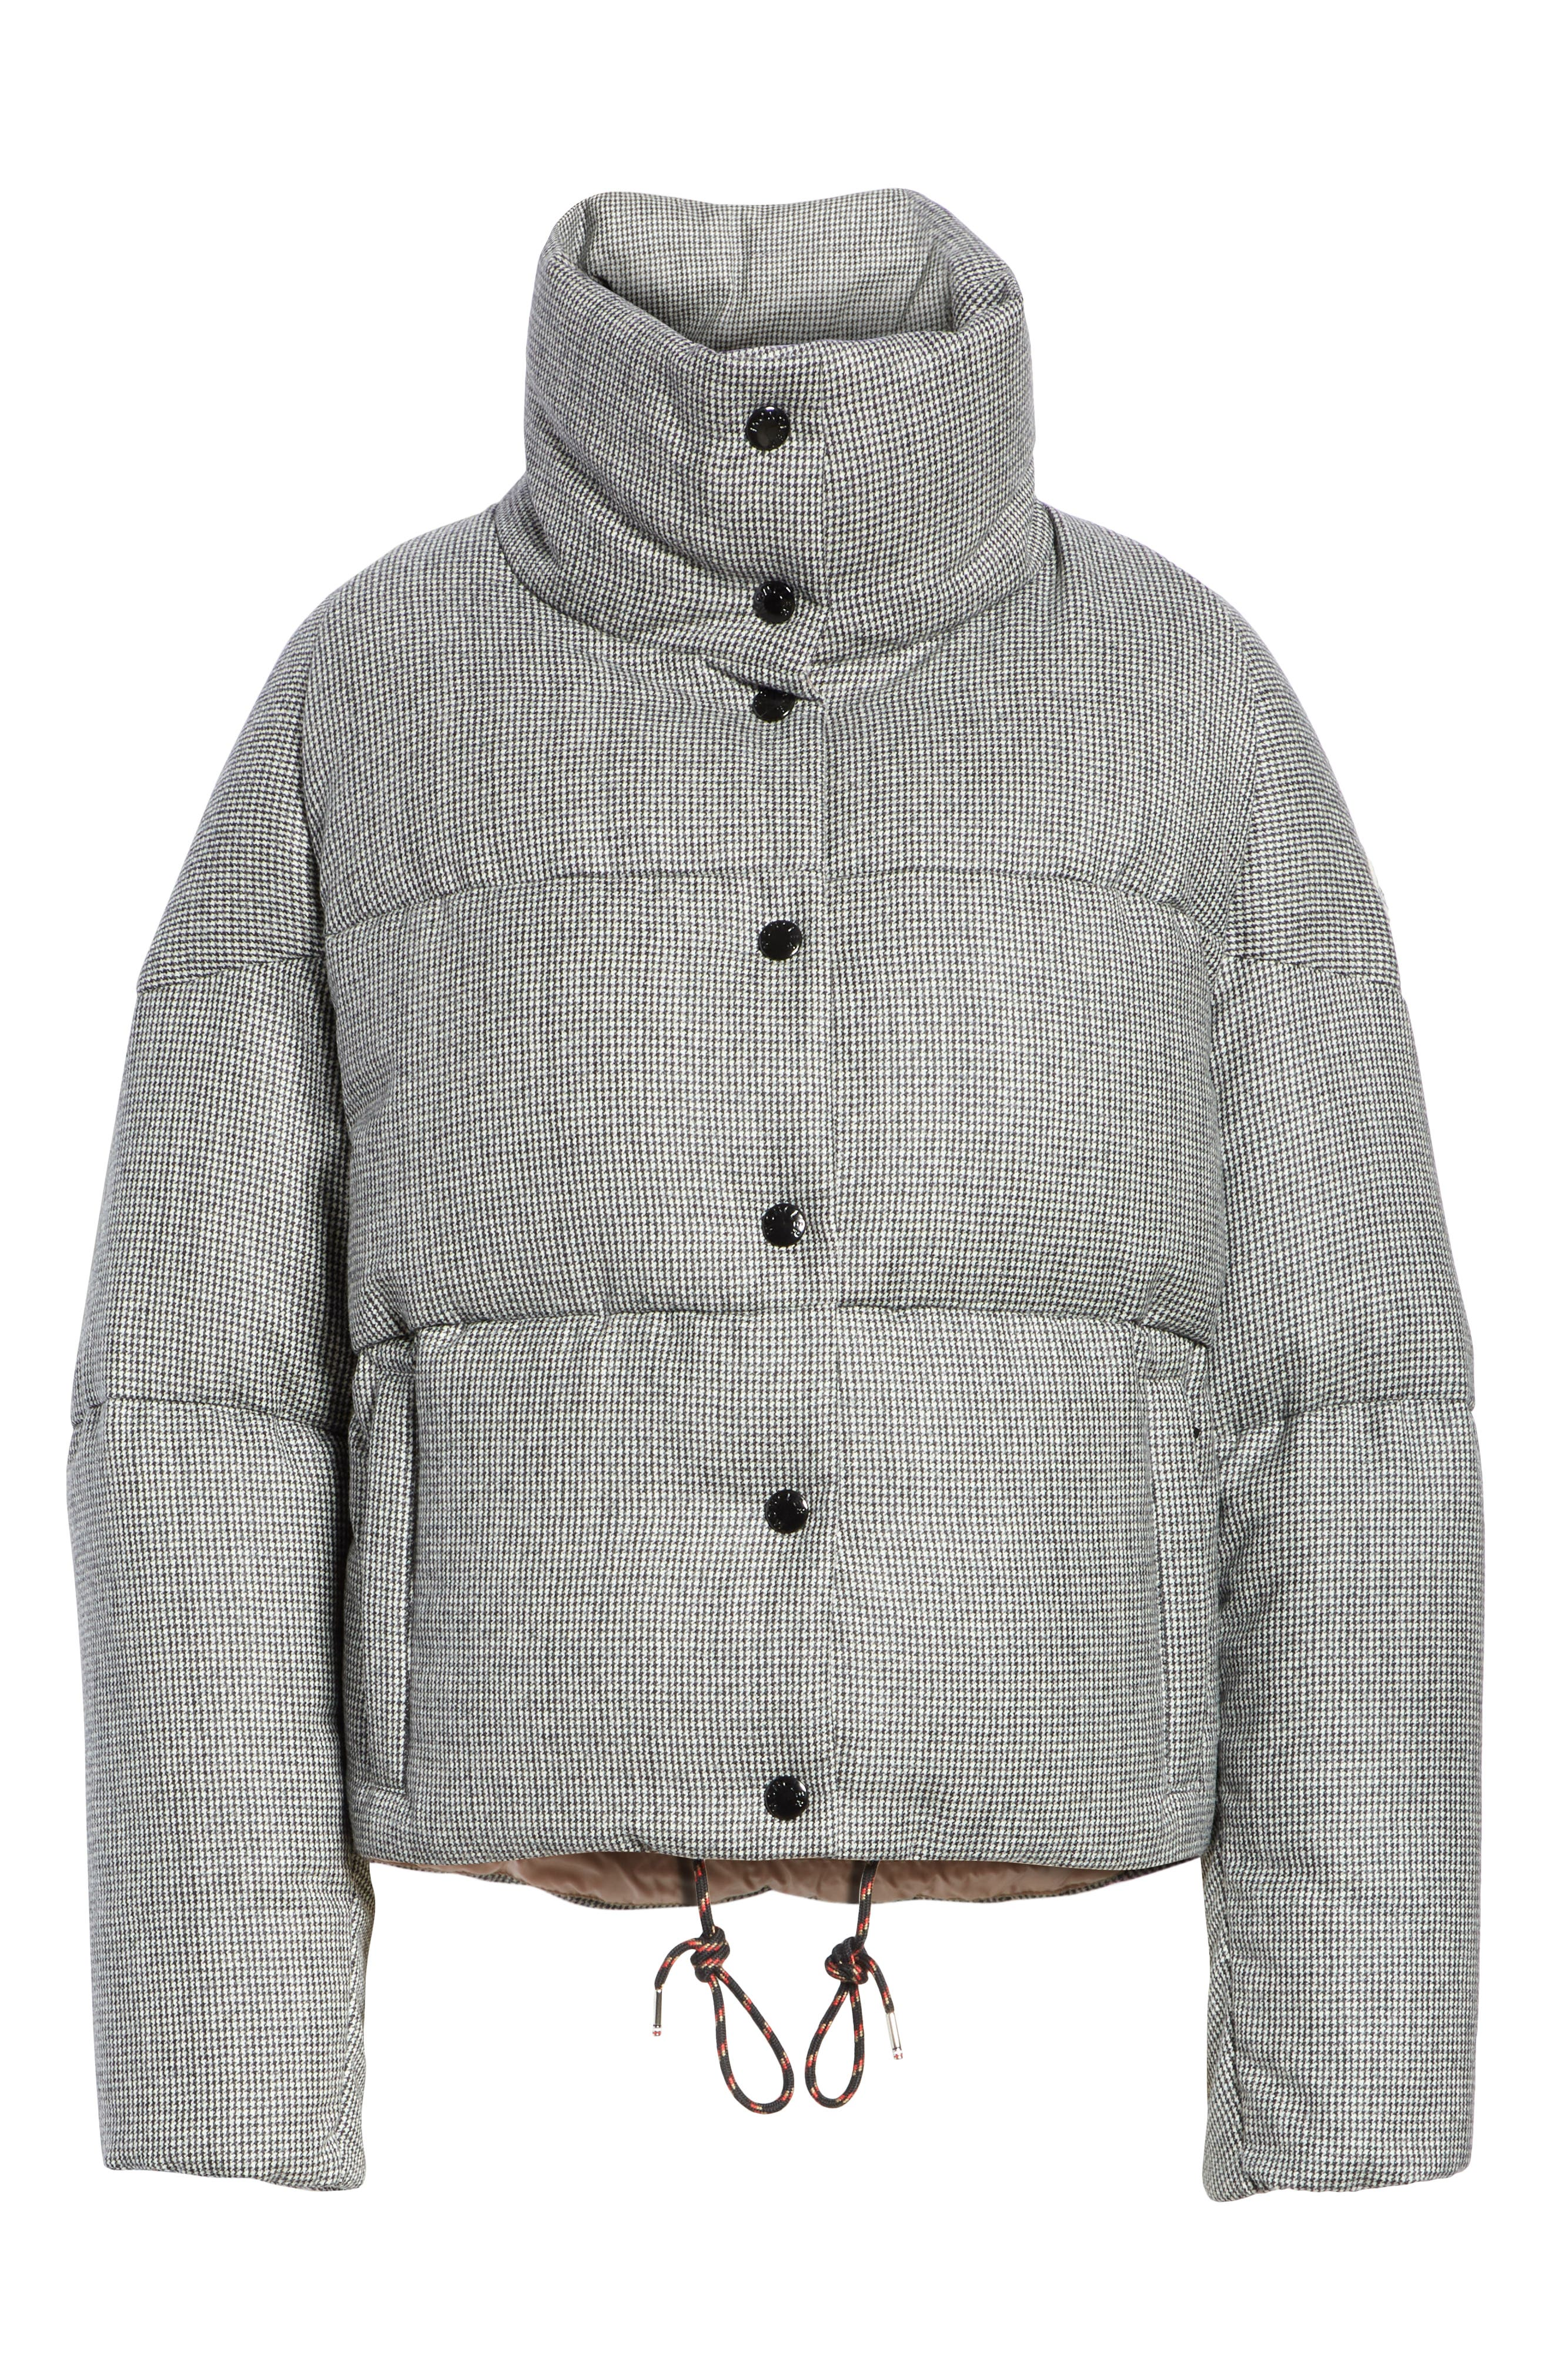 MONCLER, Cer Wool Down Puffer Jacket, Alternate thumbnail 5, color, 001